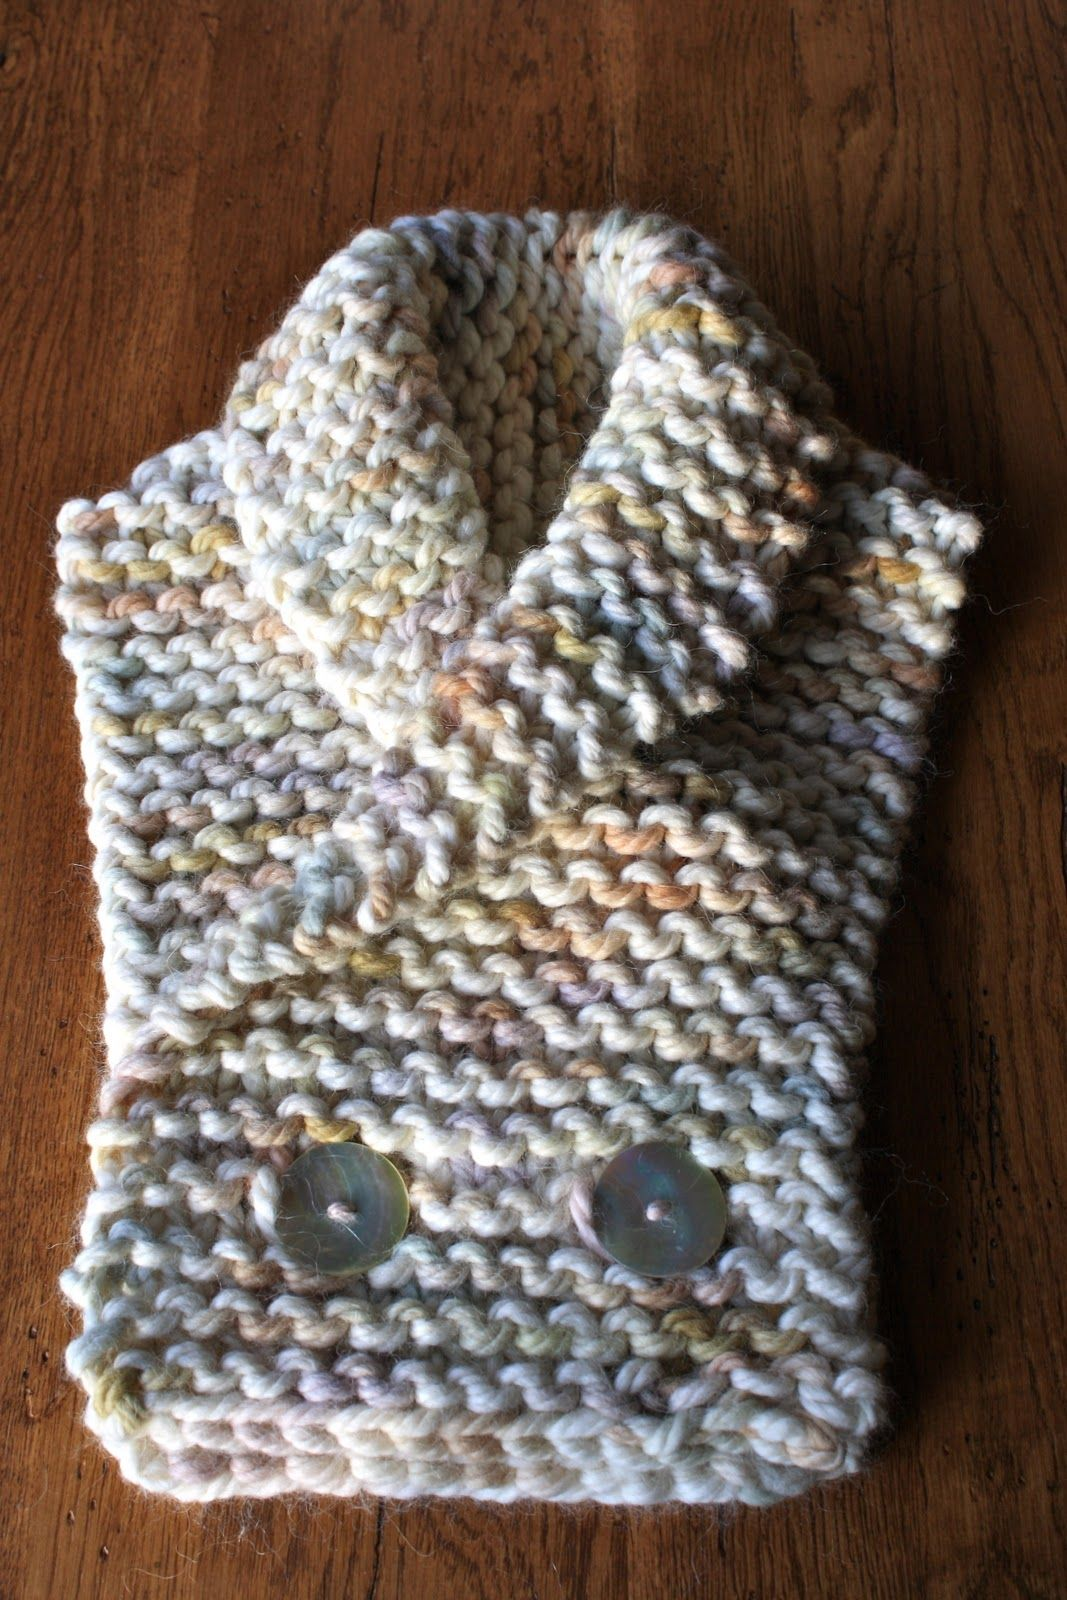 Cora Cooks: Knit One - A New Kind of Recipe | Knice Knits ...